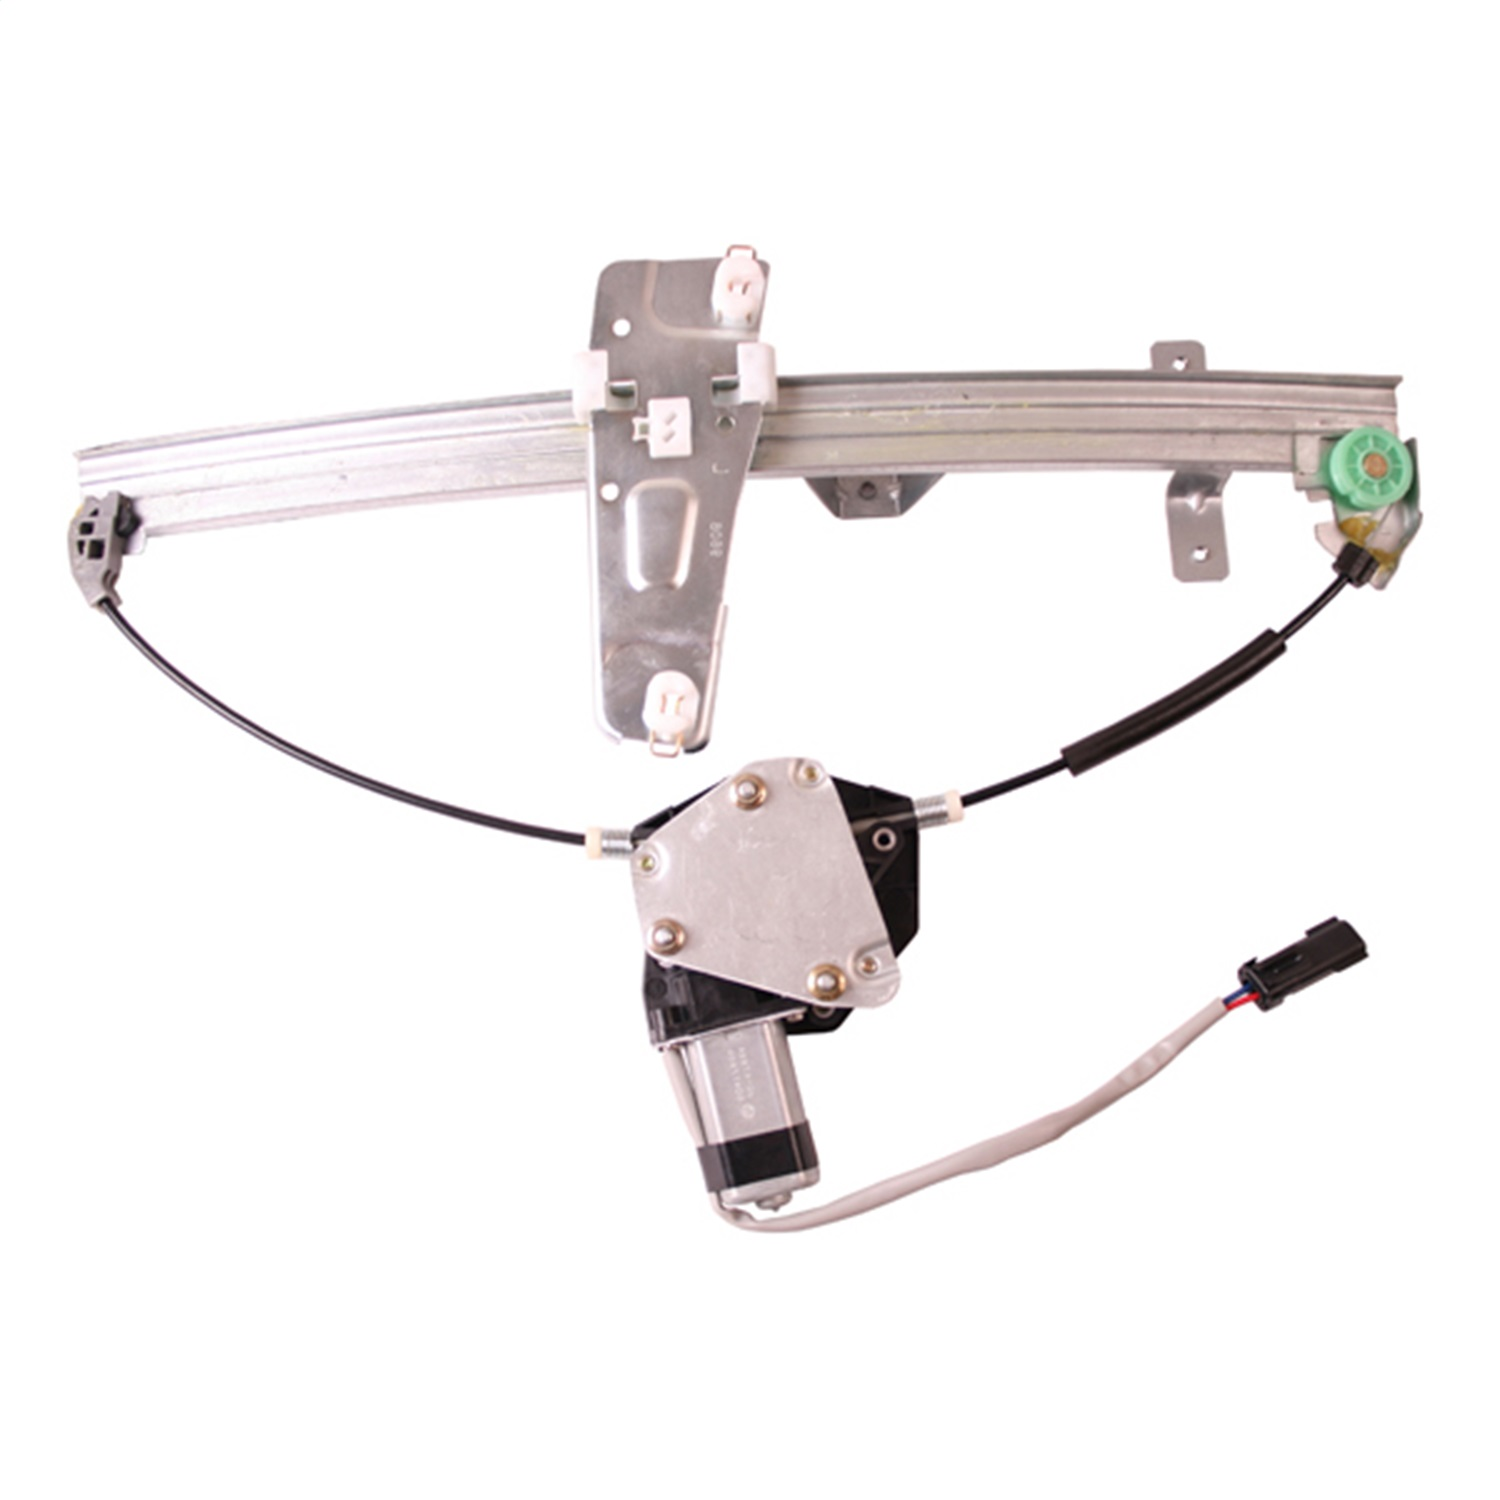 Omix-Ada 11821.24 Power Window Regulator Fits 99-00 Grand Cherokee (WJ)